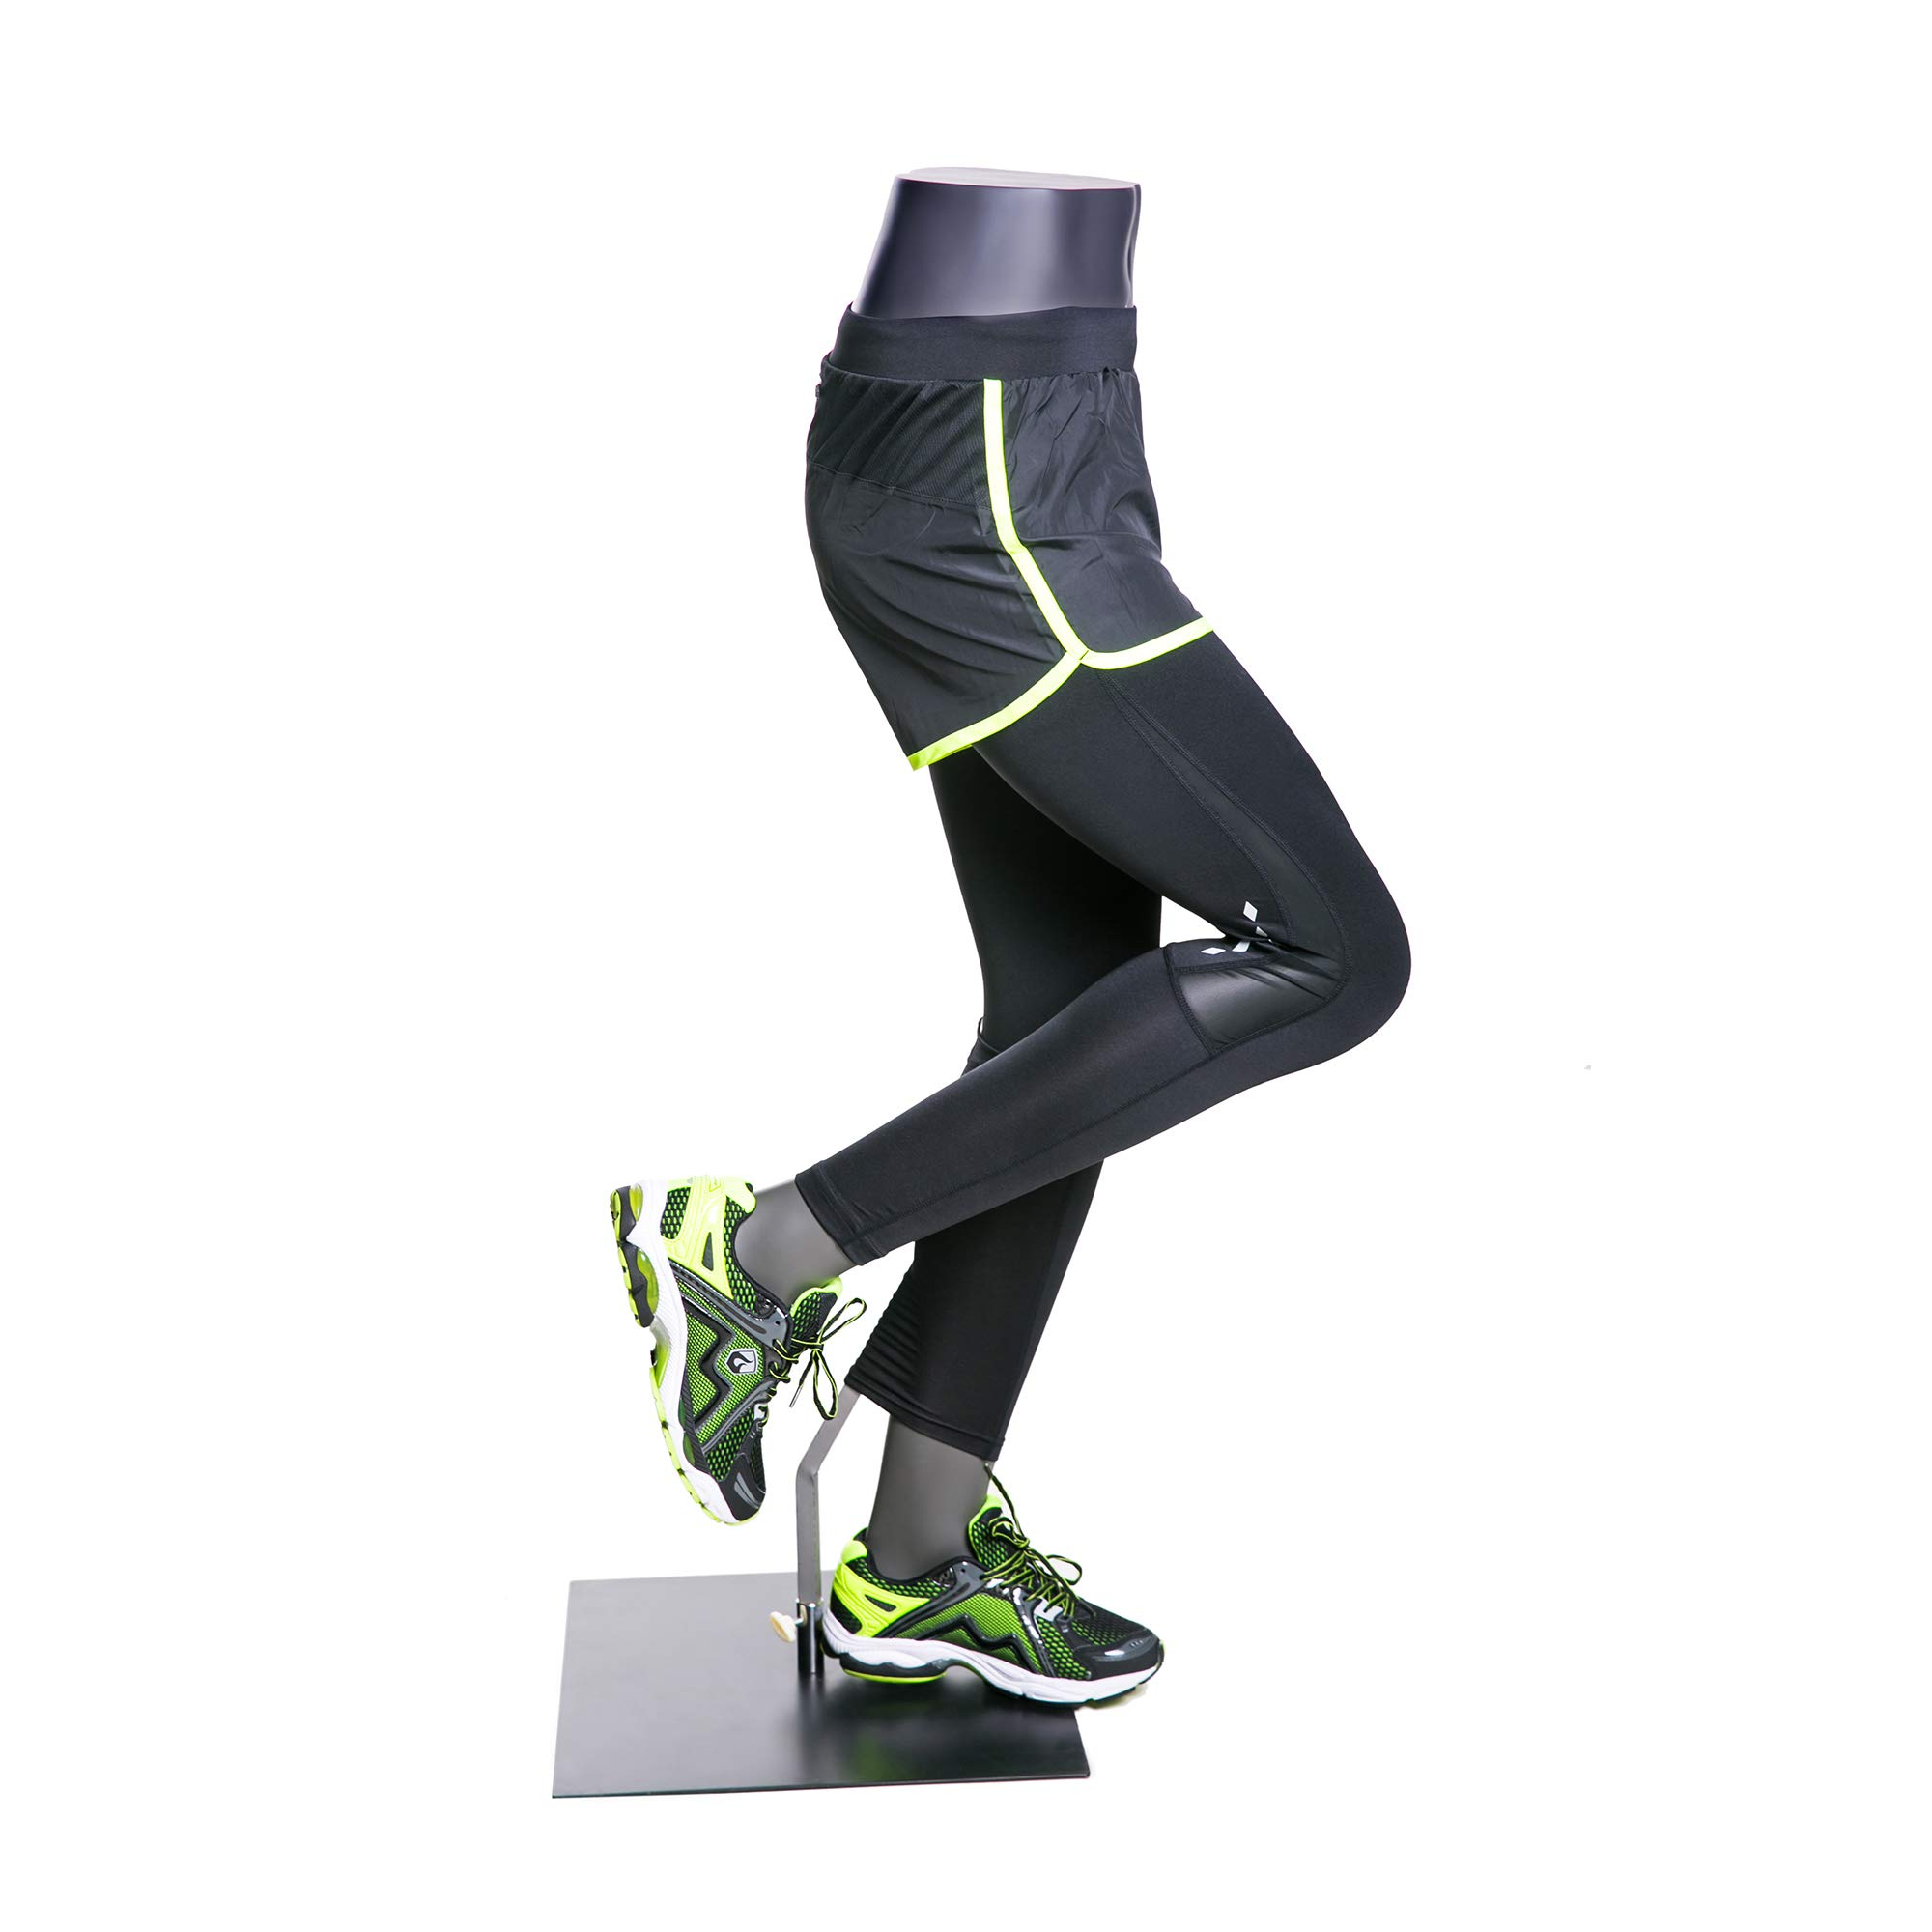 (MZ-HEF51LEG) High end Quality. Eye Catching Female Headless Mannequin Leg, Athletic Style. Running Pose. by Roxy Display (Image #3)